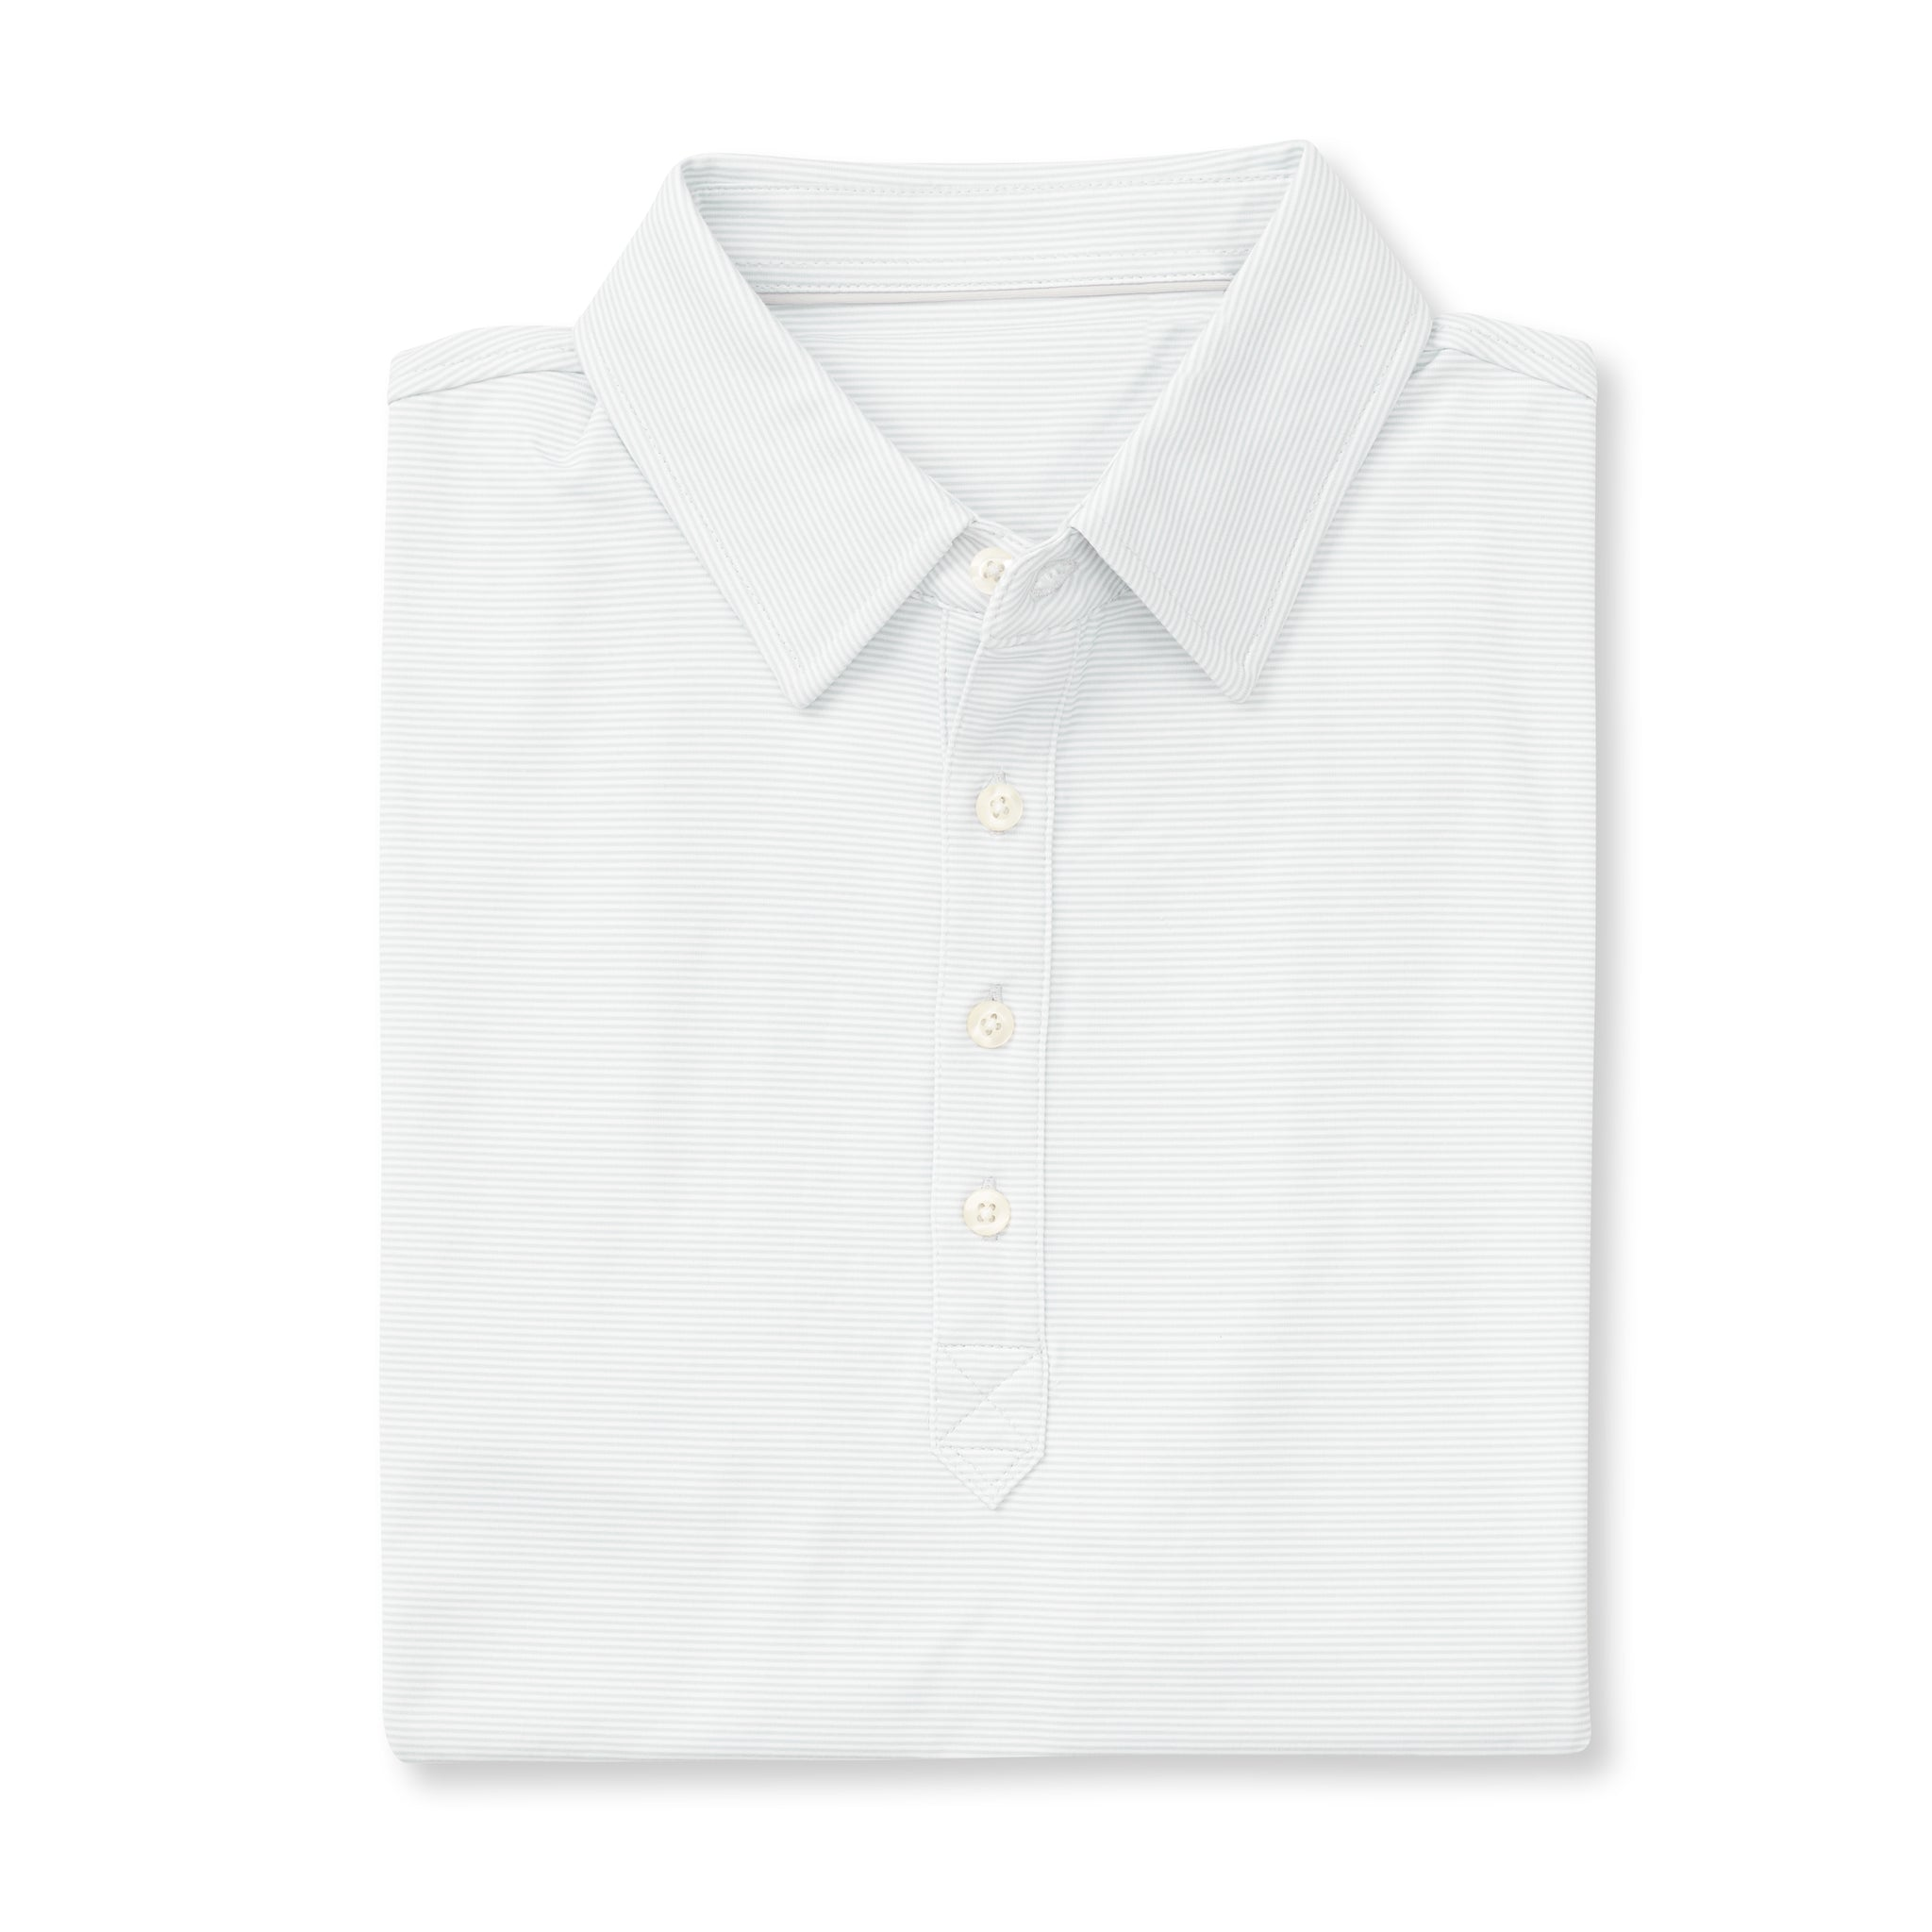 LUXTEC Champions Short Sleeve Stripe Polo - White/Cloud IS72410